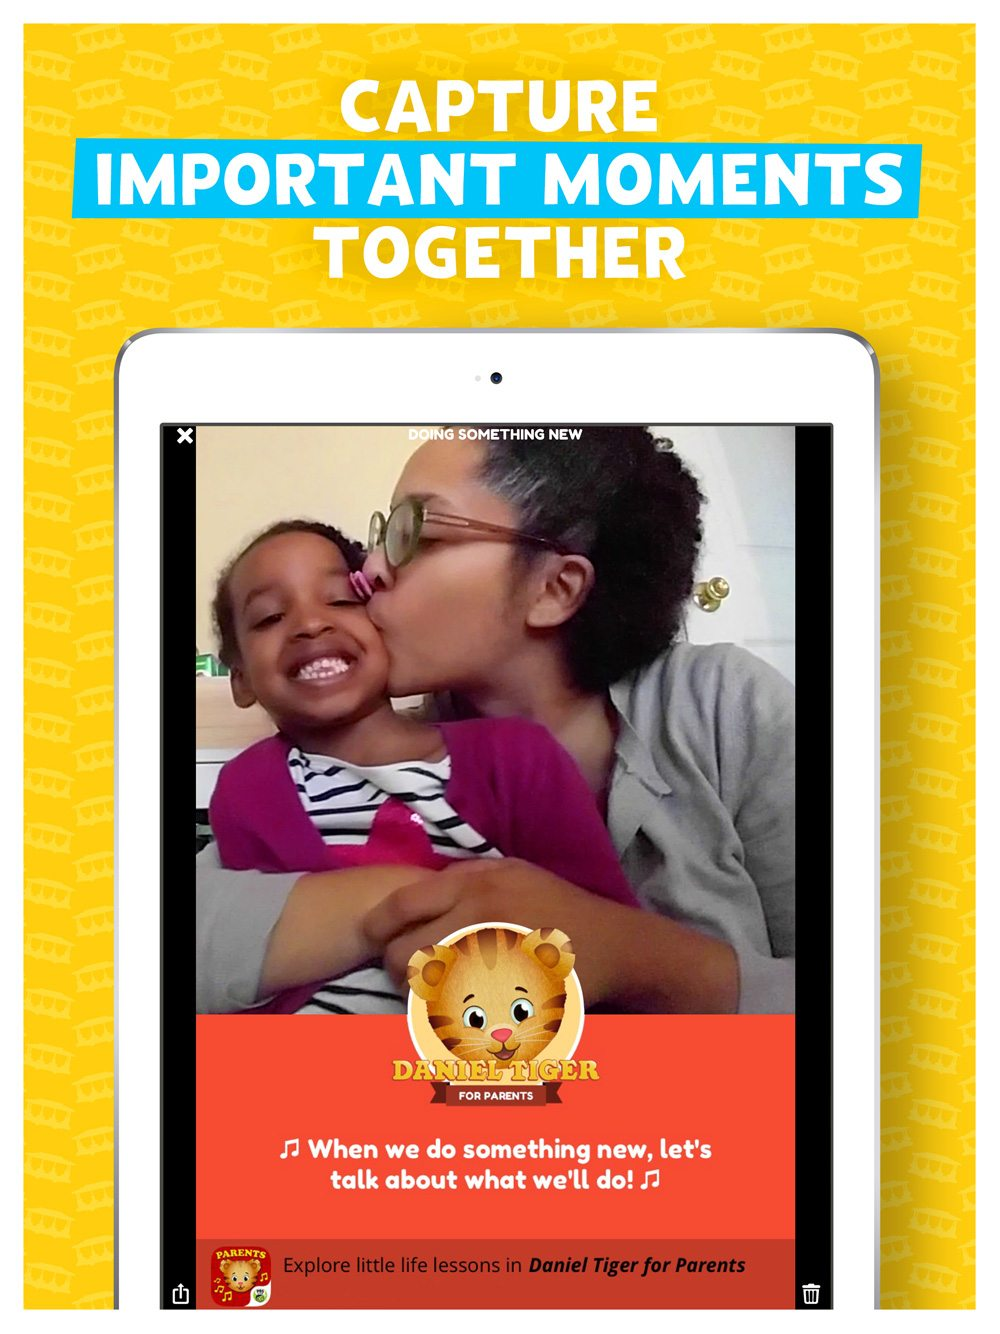 New \'Daniel Tiger for Parents\' App From PBS Kids - GeekDad